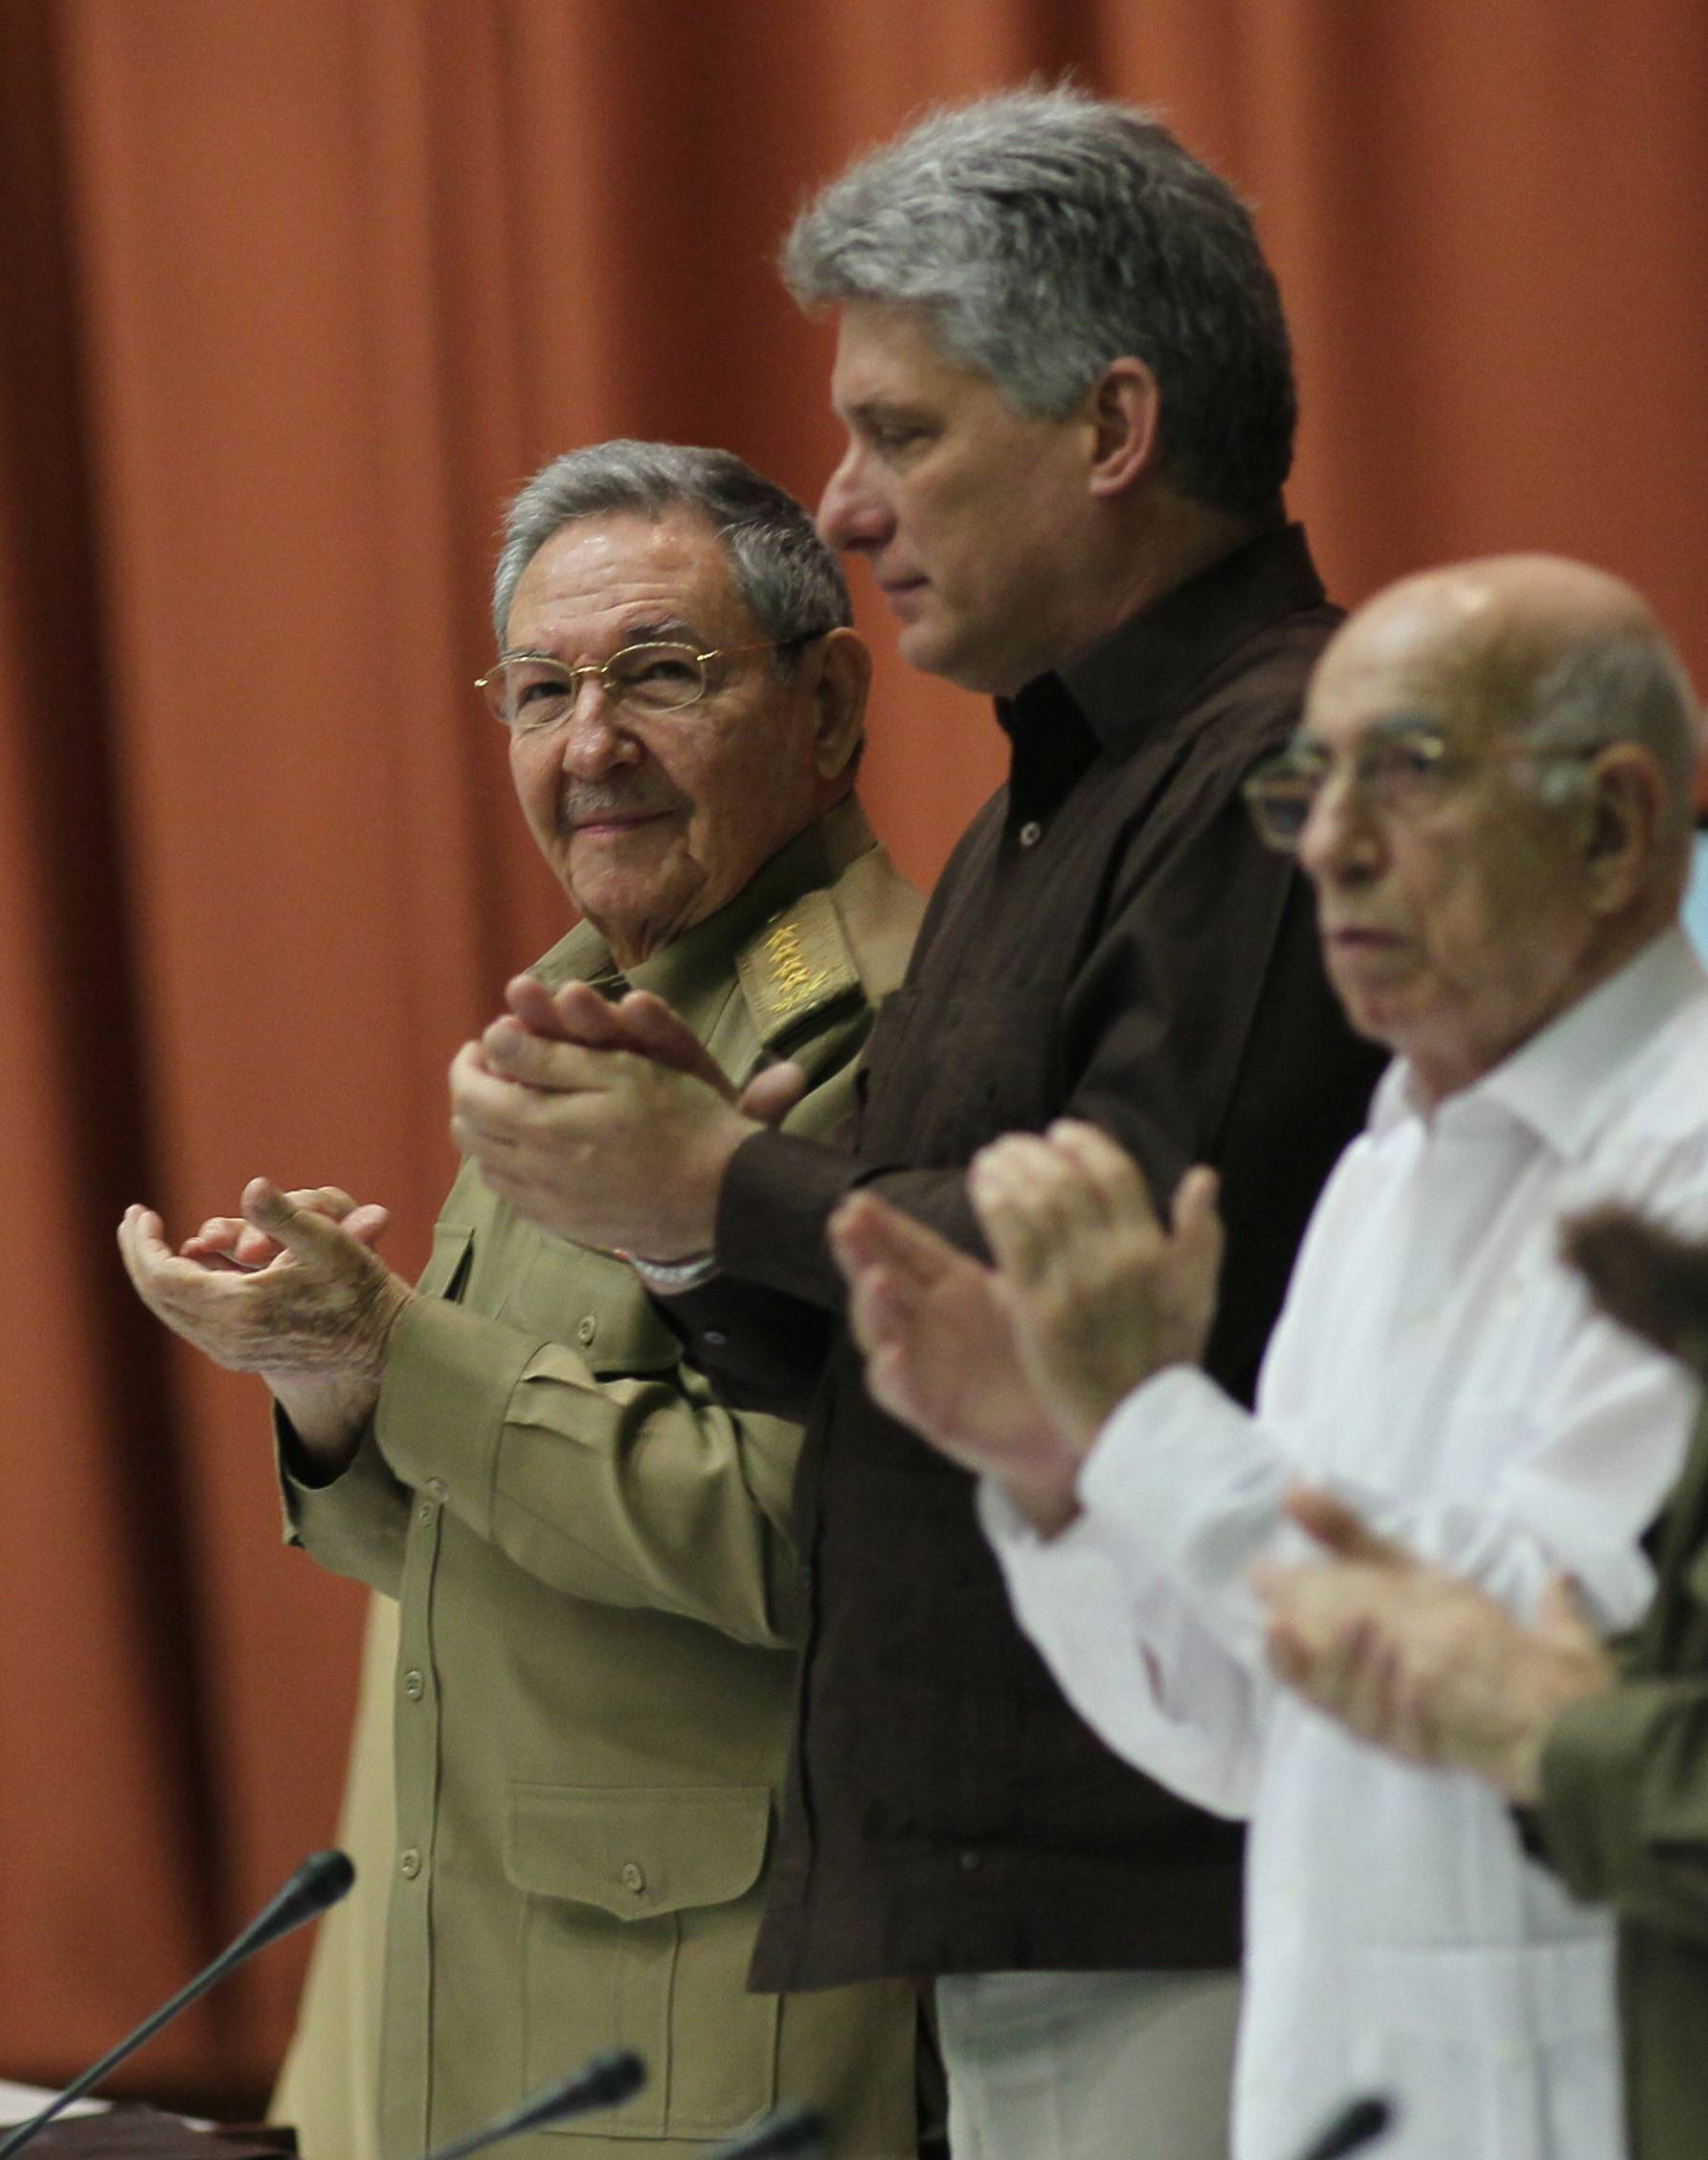 Cuba's President Raul Castro, left, Cuba's Vice President Miguel Diaz-Canel, center, and First Vice-President of the Council of State Jose Ramon Machado Ventura, right, applaud Saturday during an extraordinary session at the National Assembly in a vote that overhauls the foreign investment law in Havana.